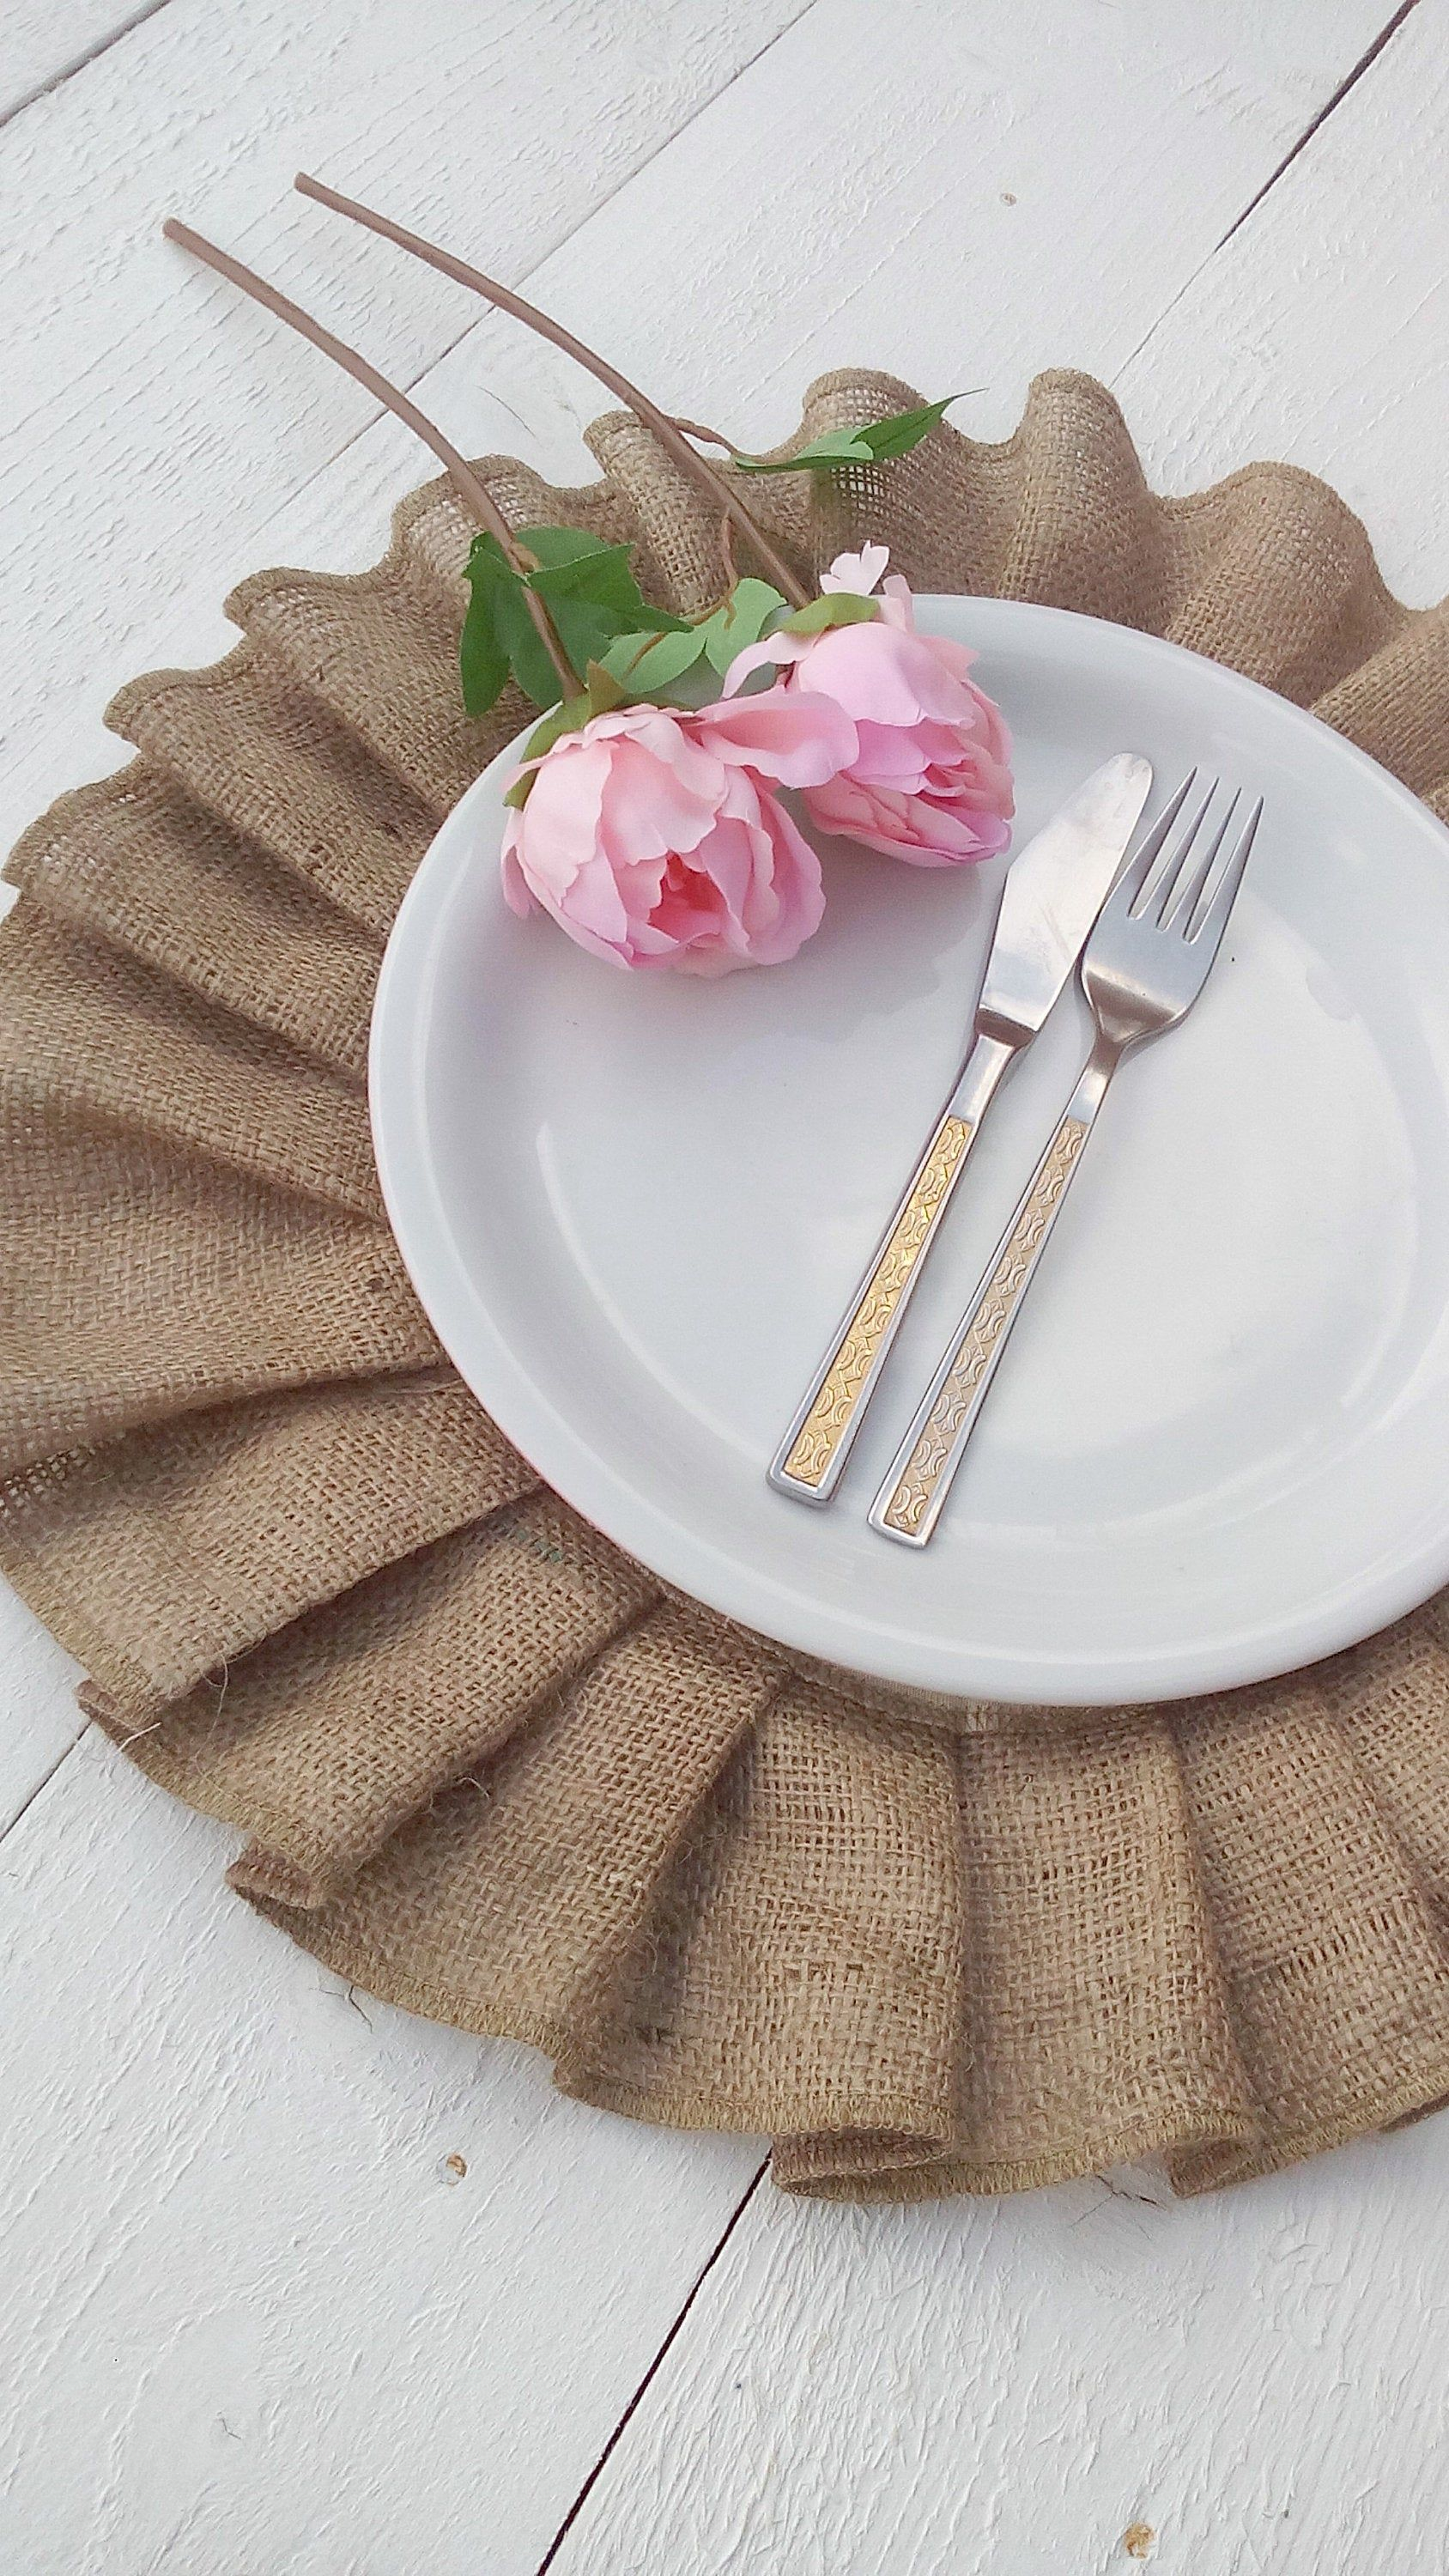 Ruffled Burlap Placemats Round Hessian Tablemats With Cotton Etsy Burlap Table Settings Table Centerpieces Wedding Table Centerpieces